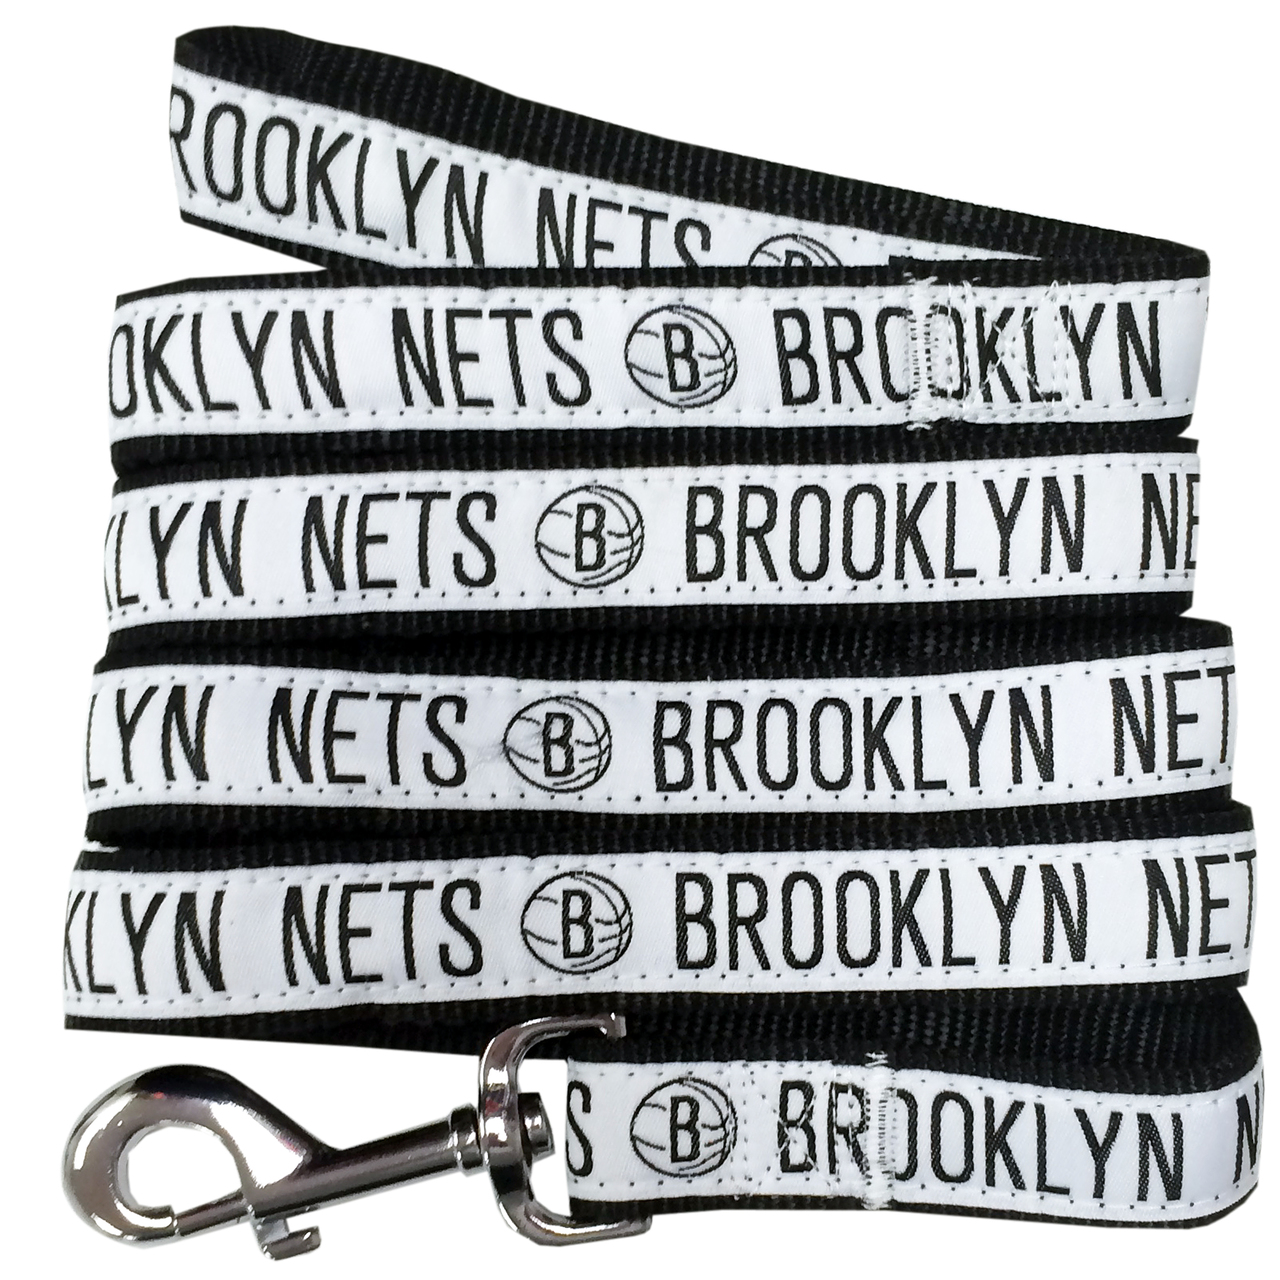 Brooklyn Nets Dog Leash NET-3031-SM